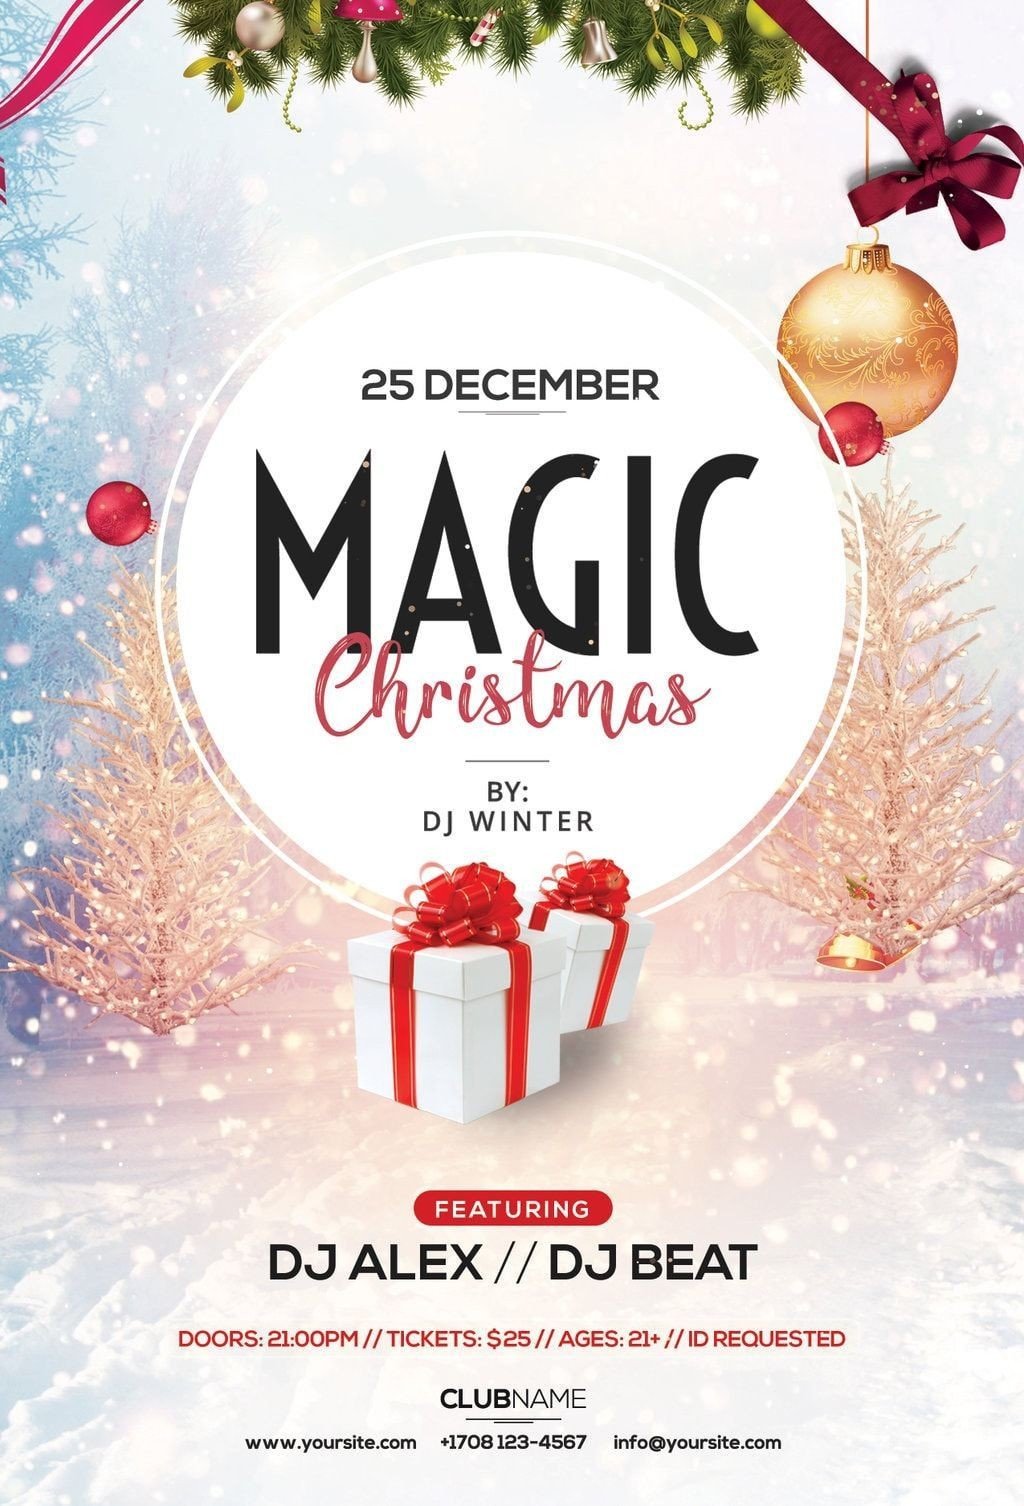 001 Magnificent Christma Flyer Template Free High Def  Party Invitation Psd DownloadLarge